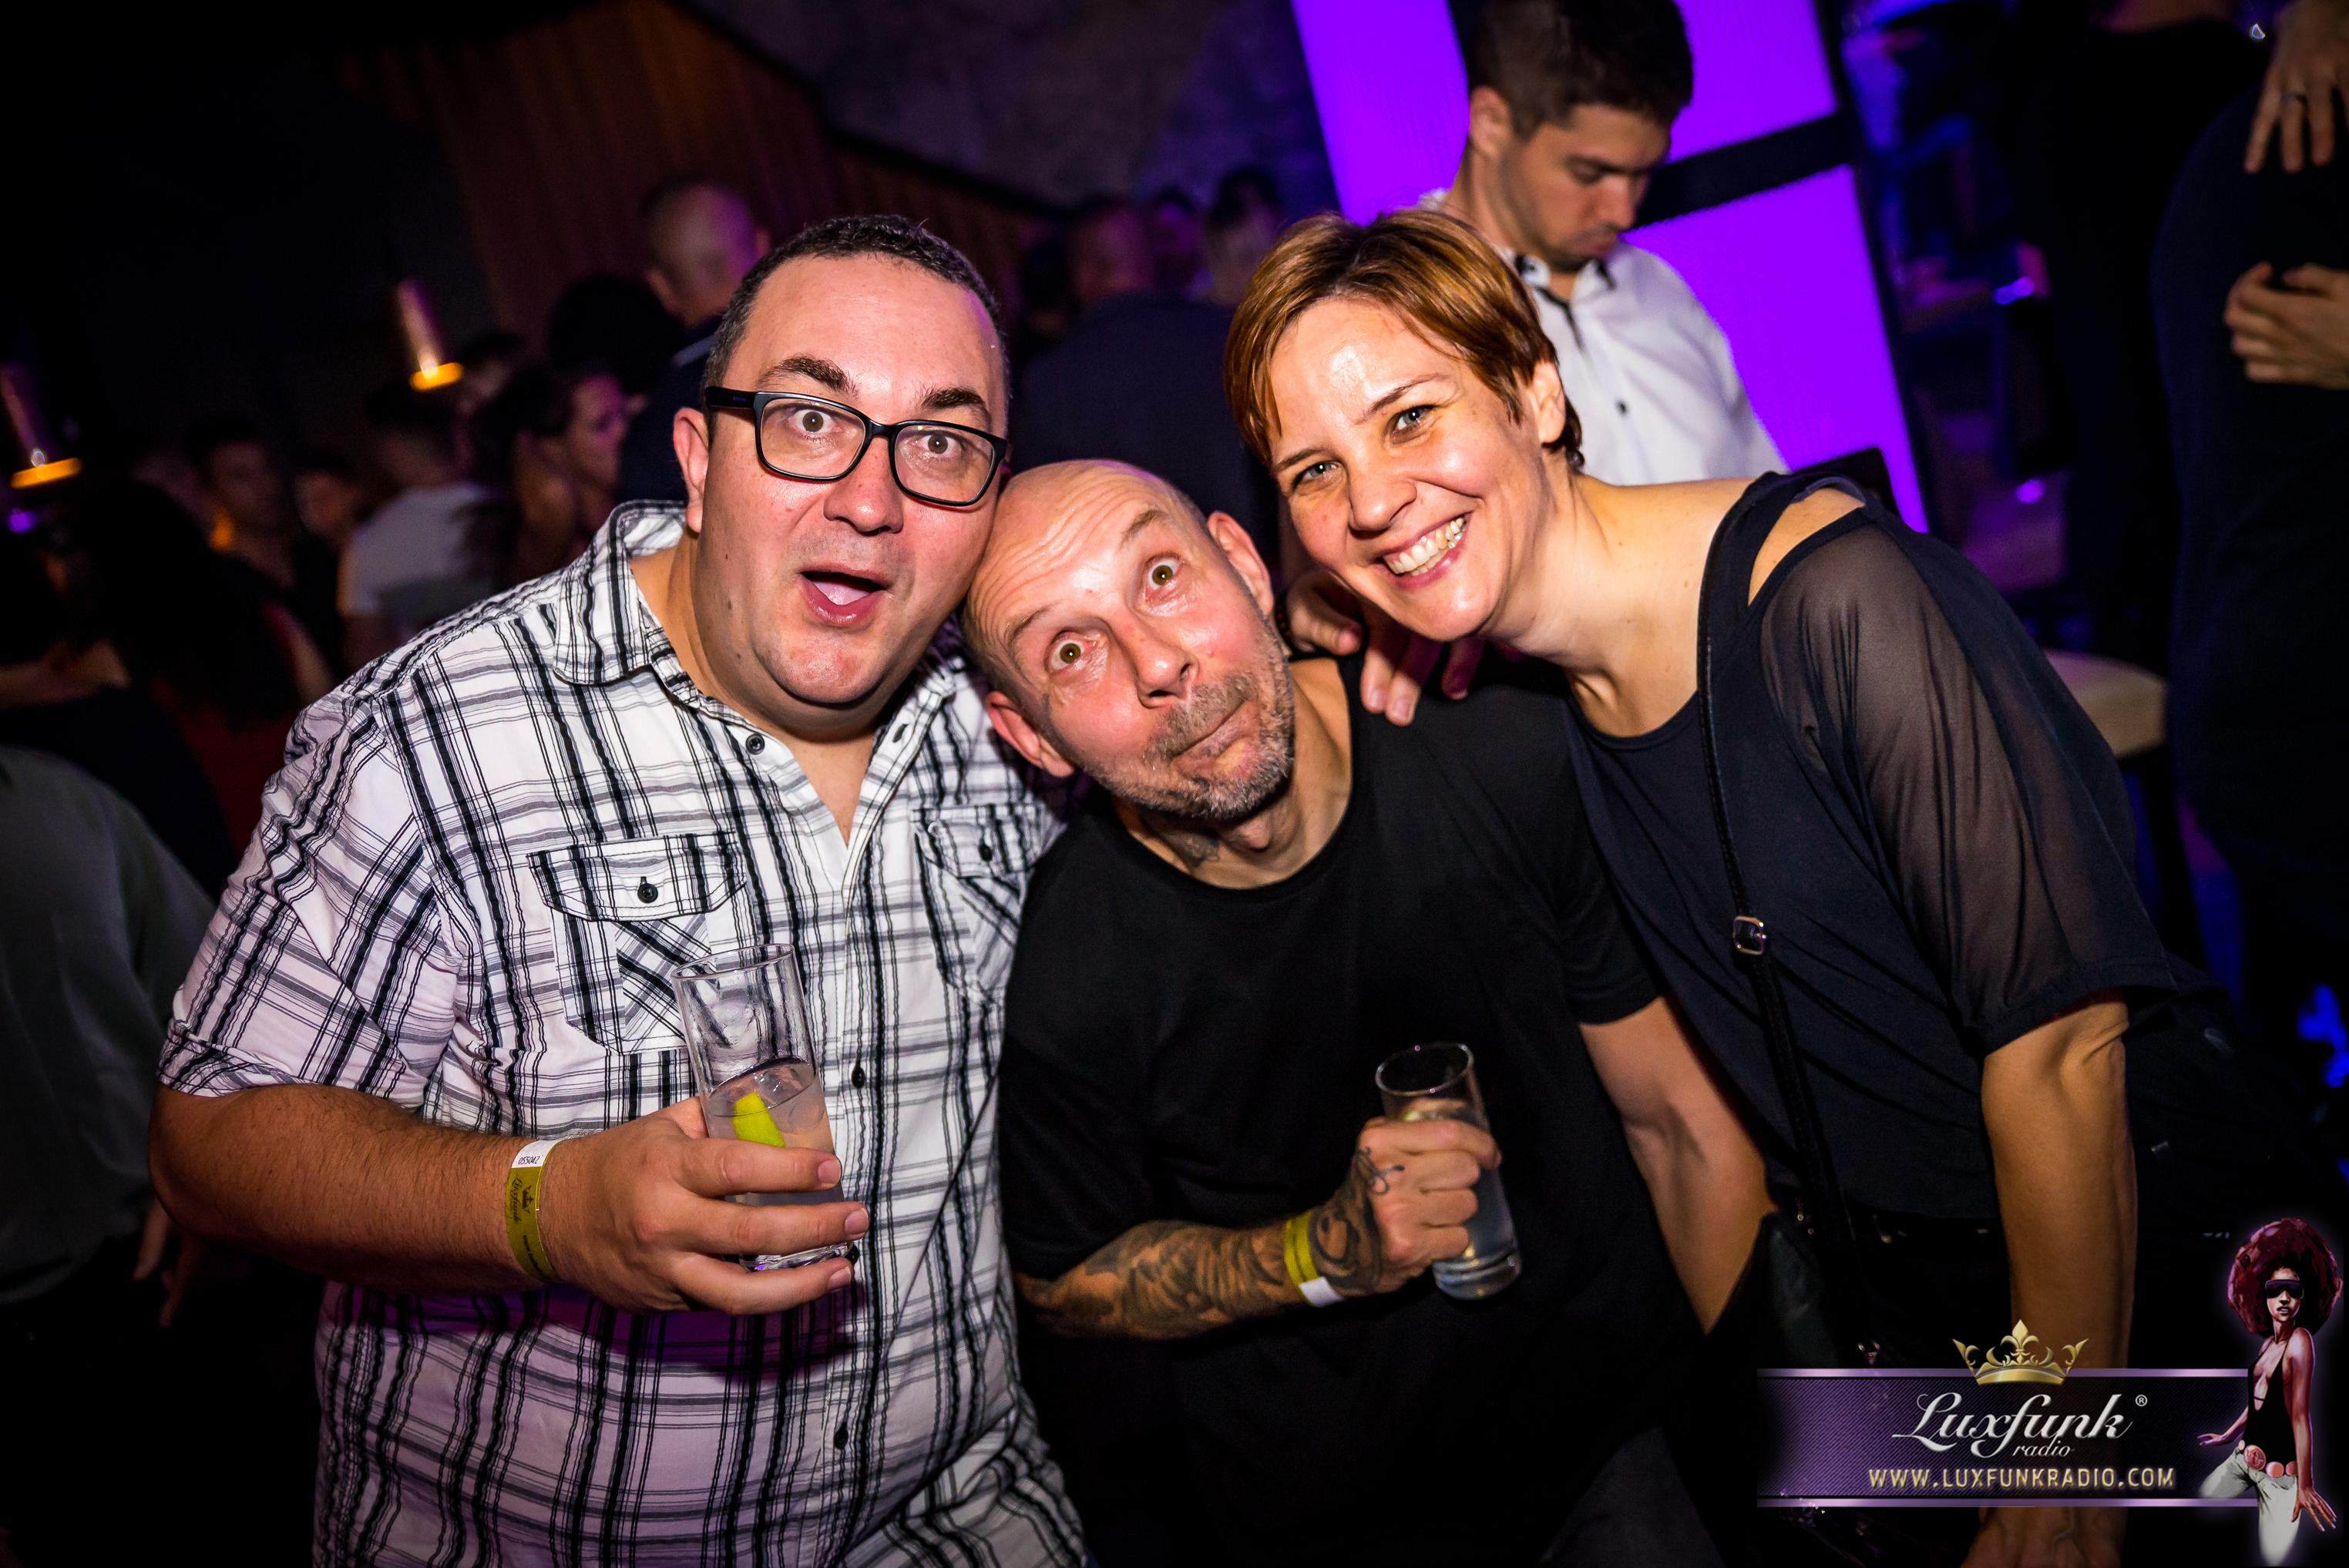 luxfunk-radio-funky-party-20191108-lock-budapest-1315